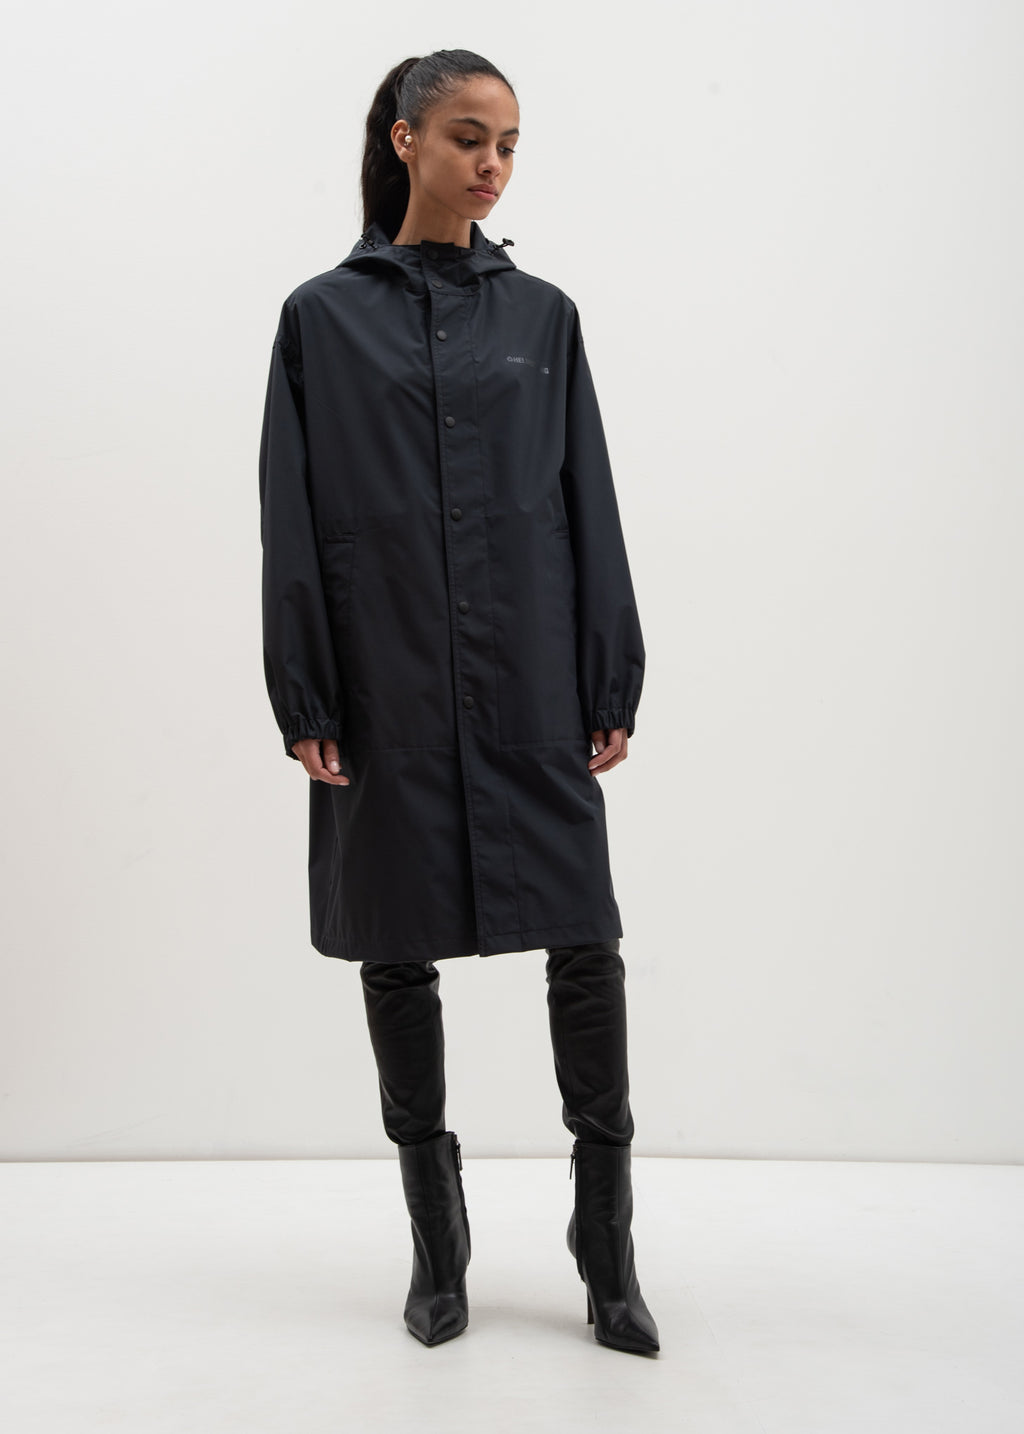 Black Hooded Raincoat (Special Project)